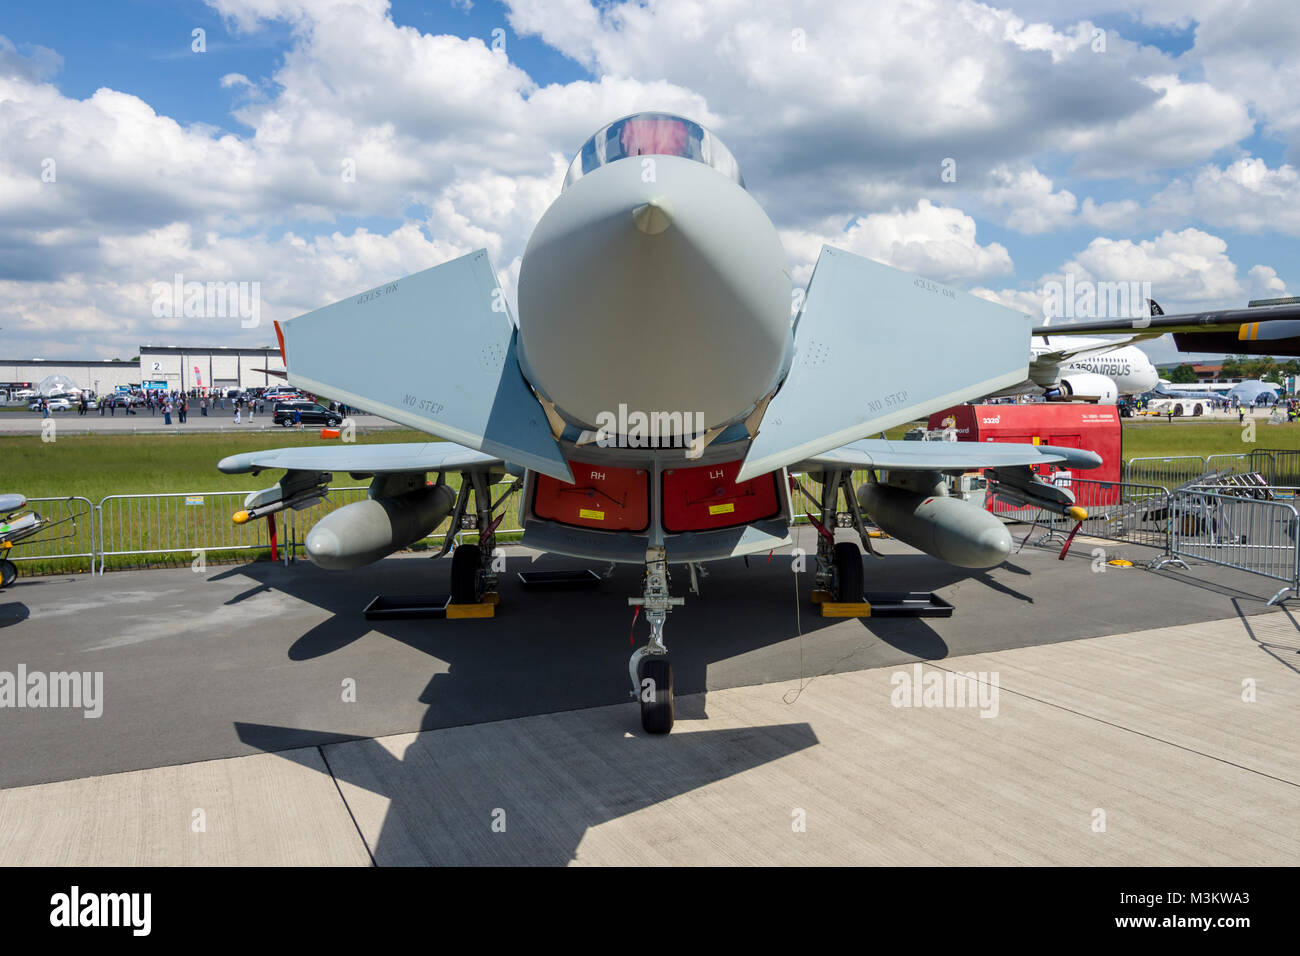 BERLIN, GERMANY - JUNE 02, 2016: Multirole fighter Eurofighter Typhoon. German Air Force (Luftwaffe). Exhibition Stock Photo